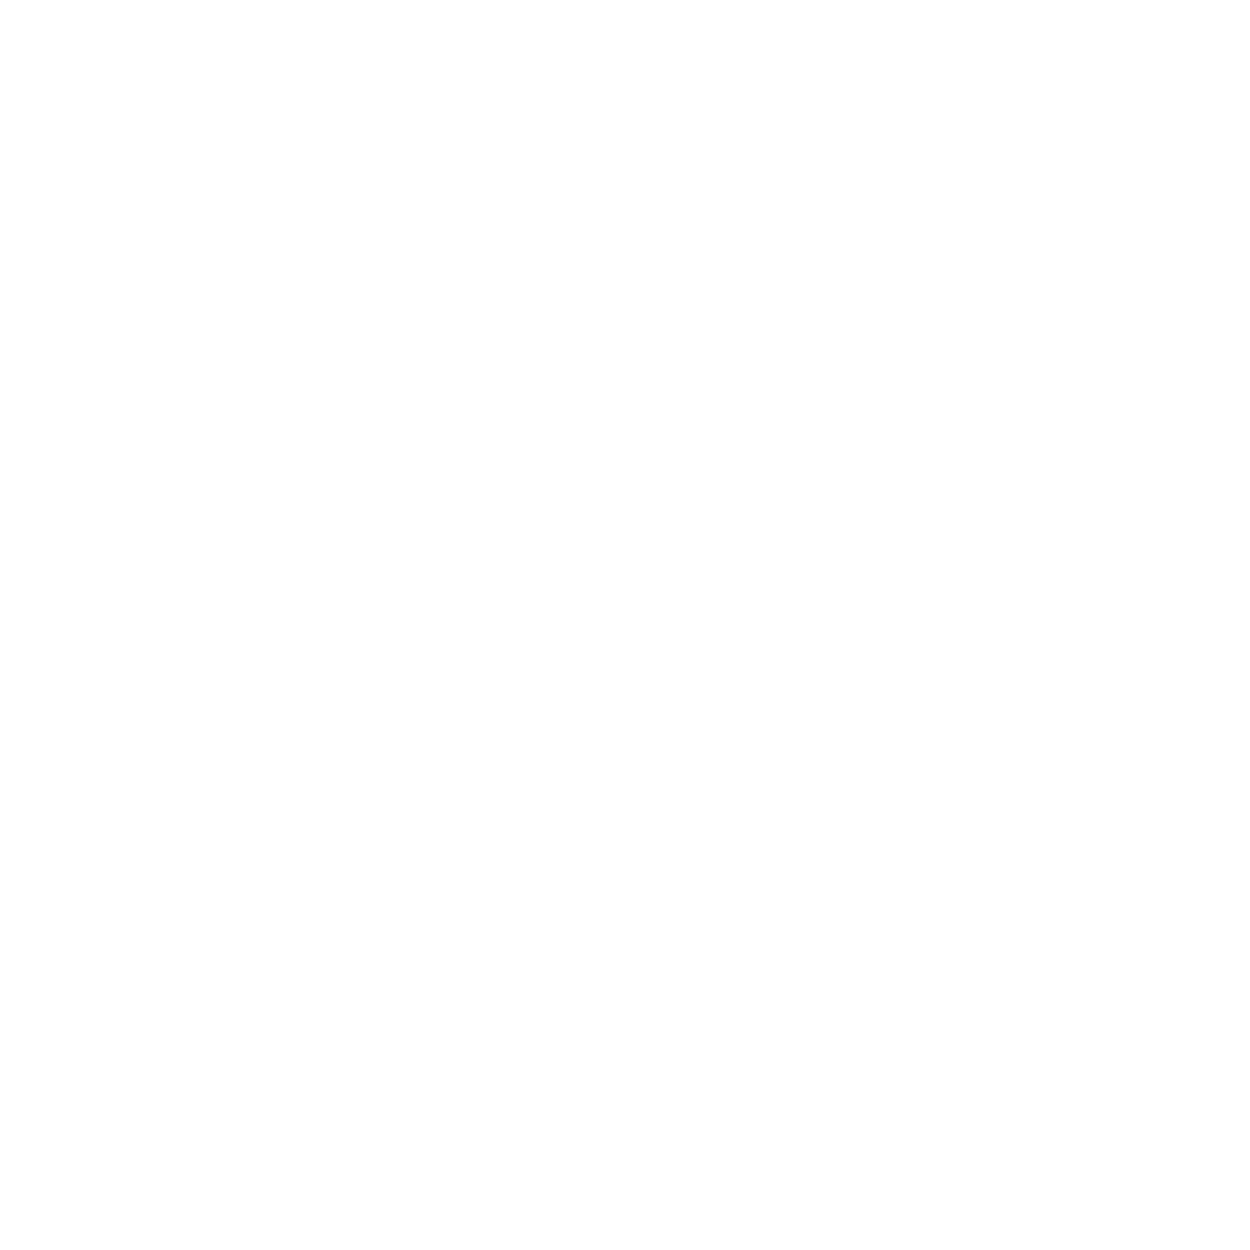 "<span style=""color: white; "">AIRPORTS</span>"